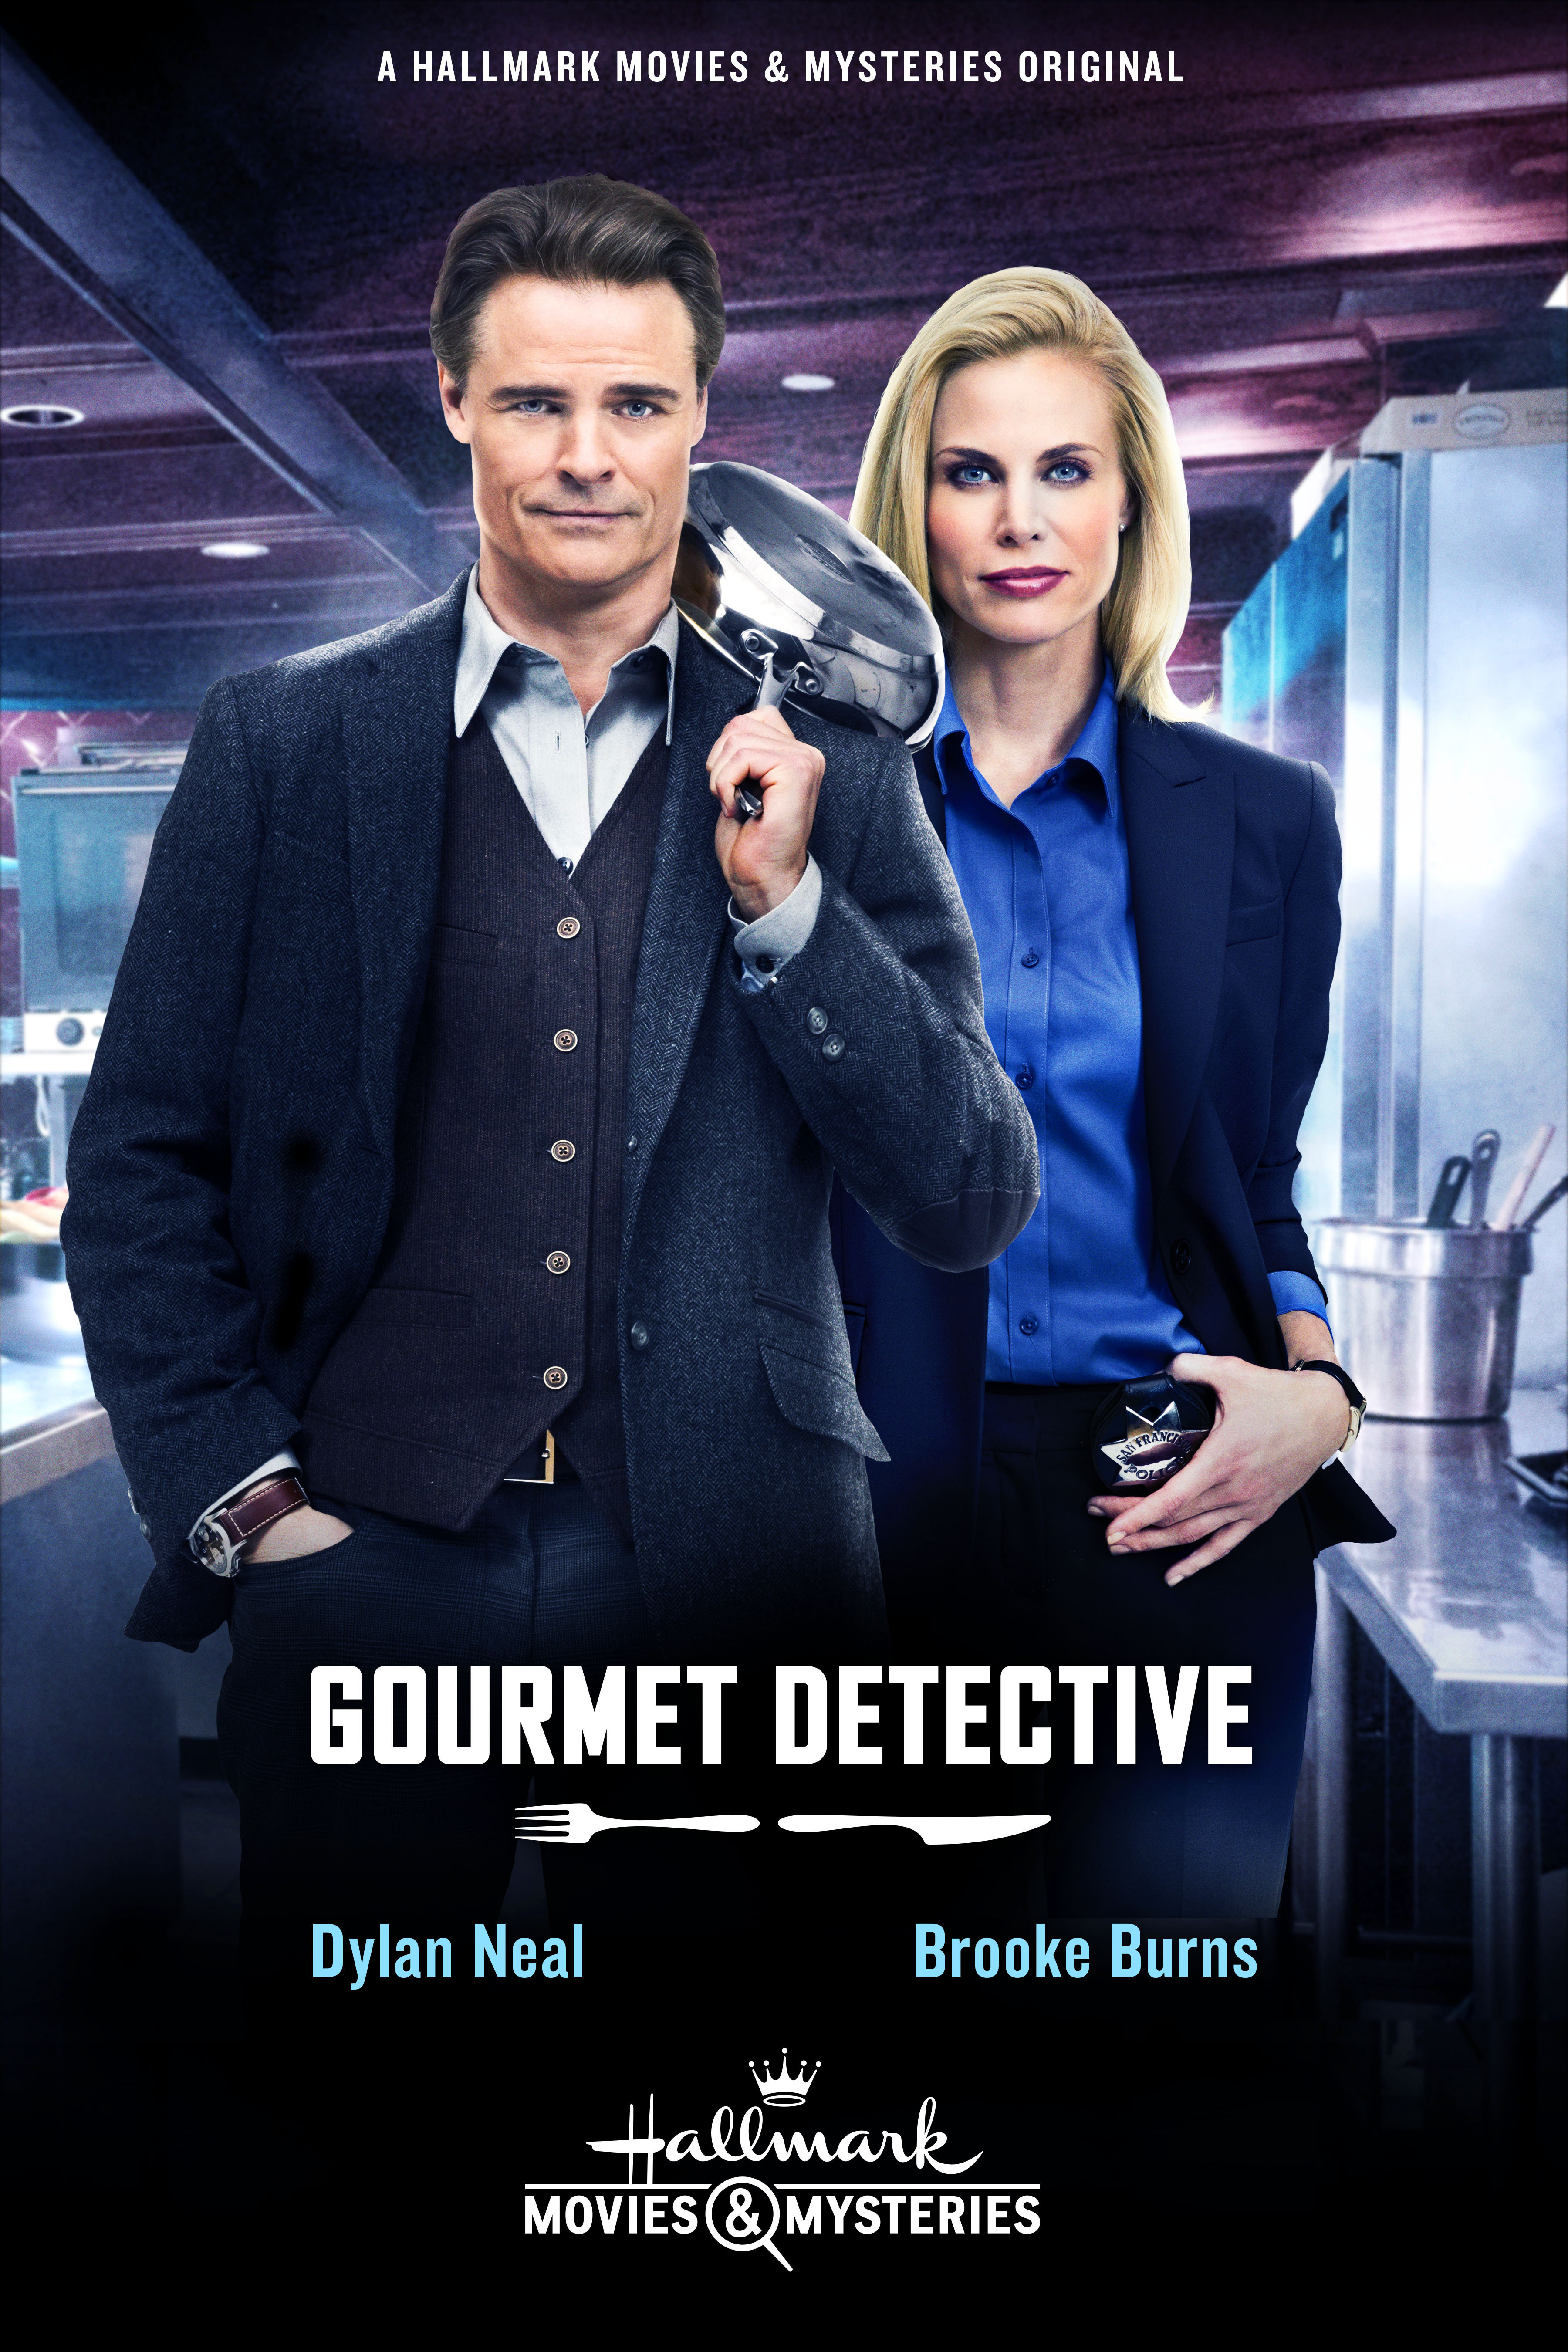 The Gourmet Detective hd on soap2day